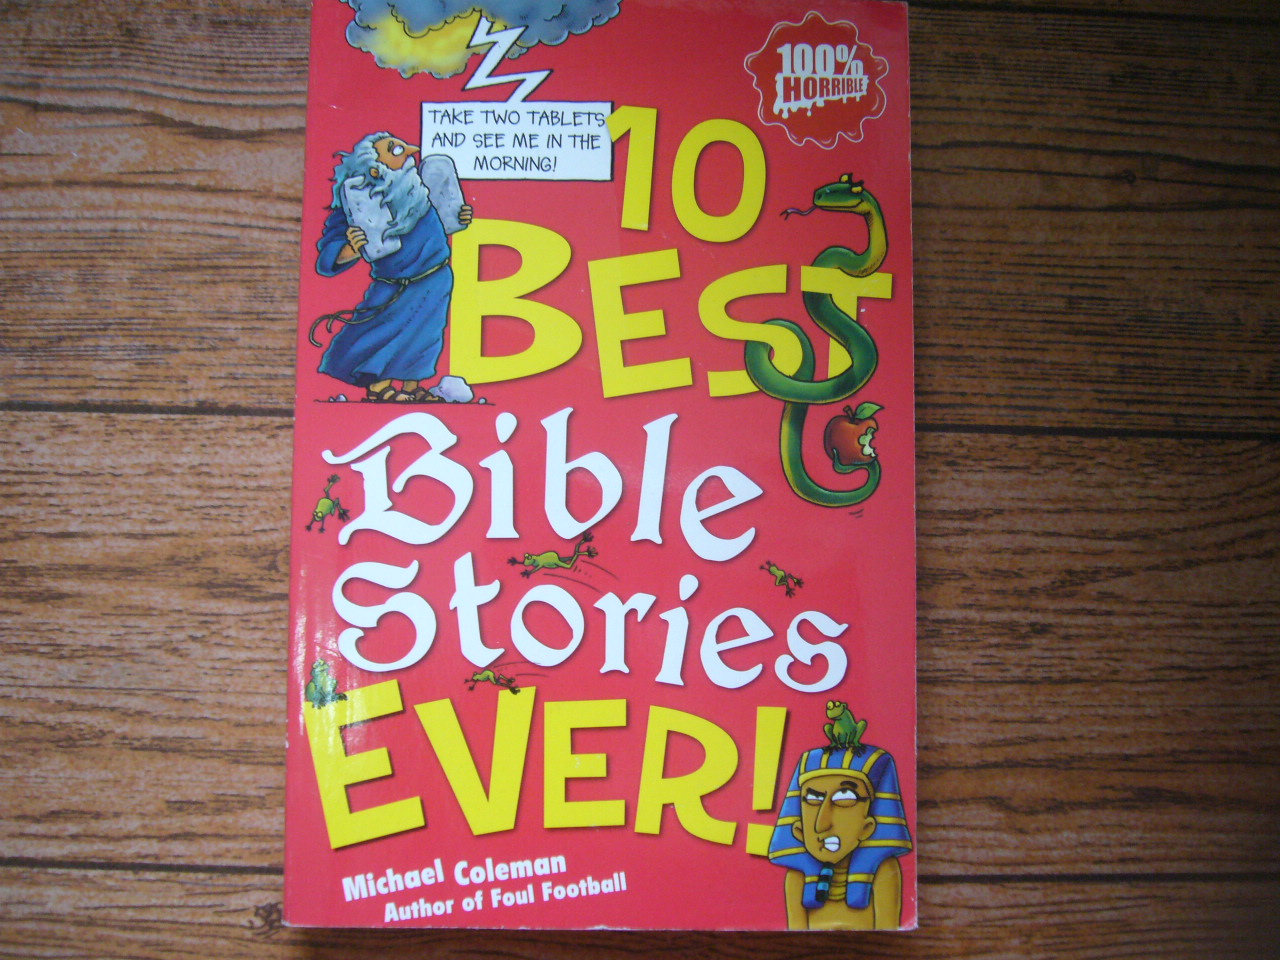 10 Best Bible Stories Ever!